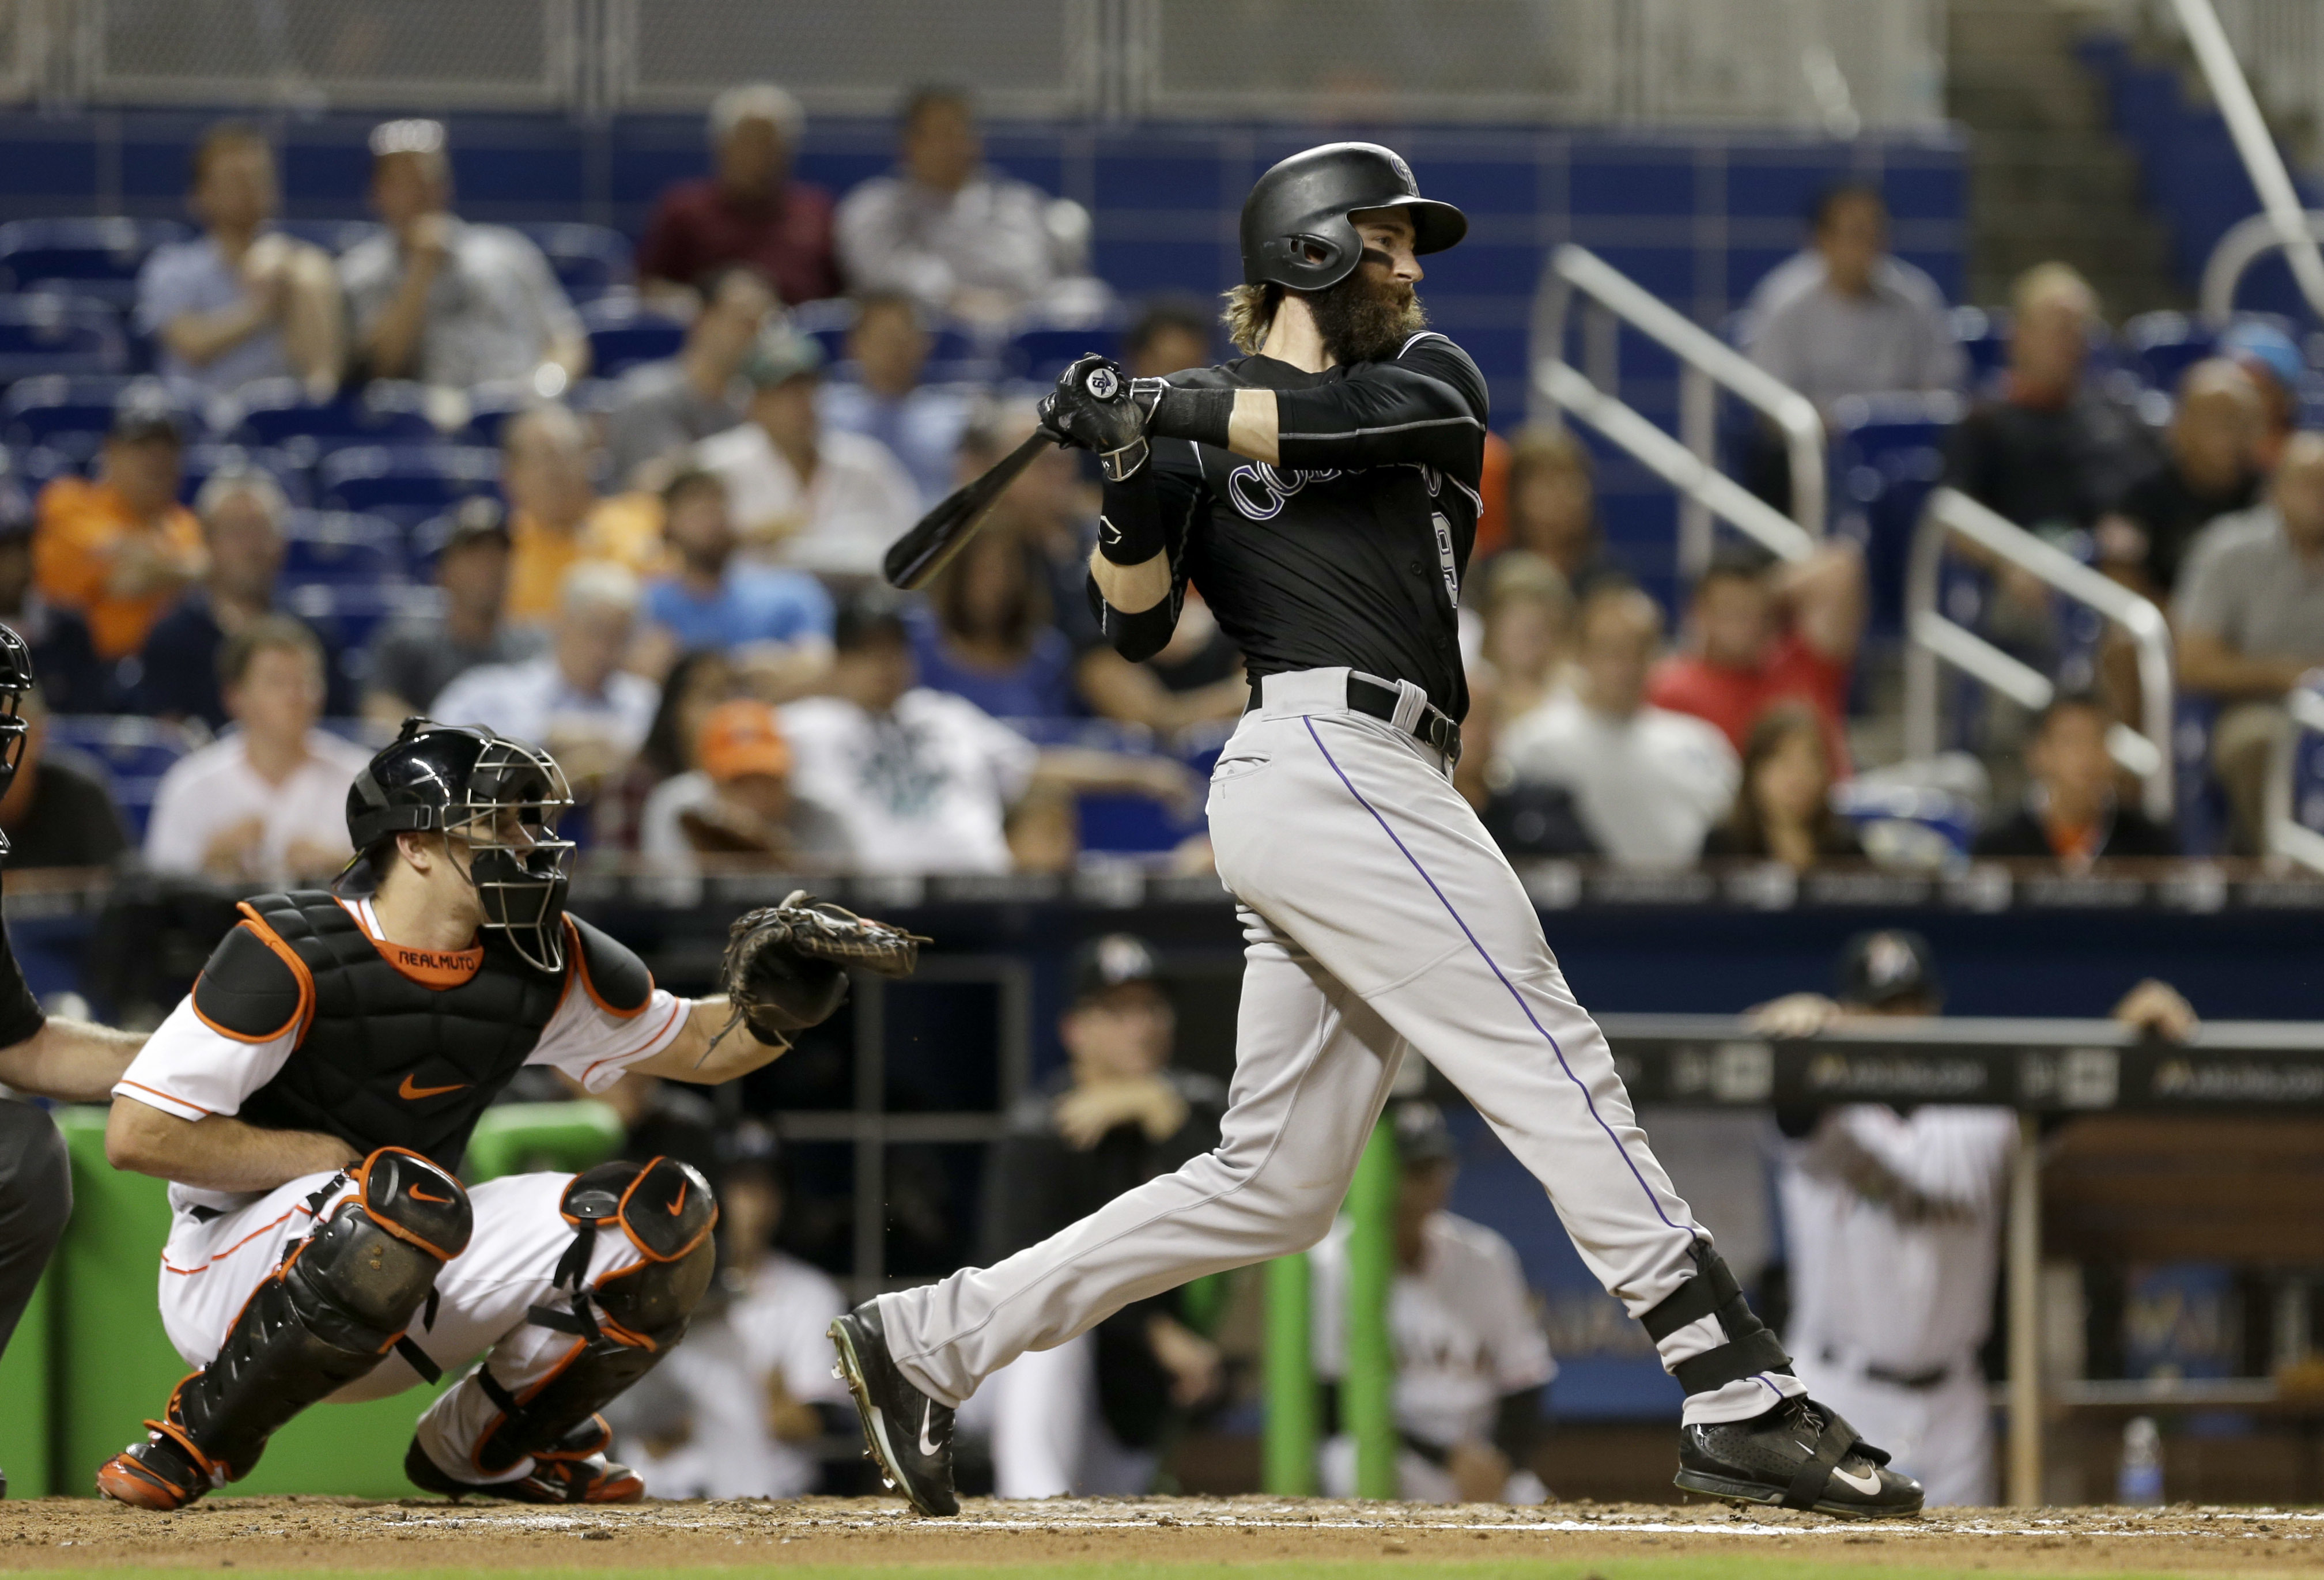 Colorado Rockies' Charlie Blackmon follows through on a base hit against the Miami Marlins during the fifth inning of a baseball game Monday, June 20, 2016, in Miami. (AP Photo/Alan Diaz)